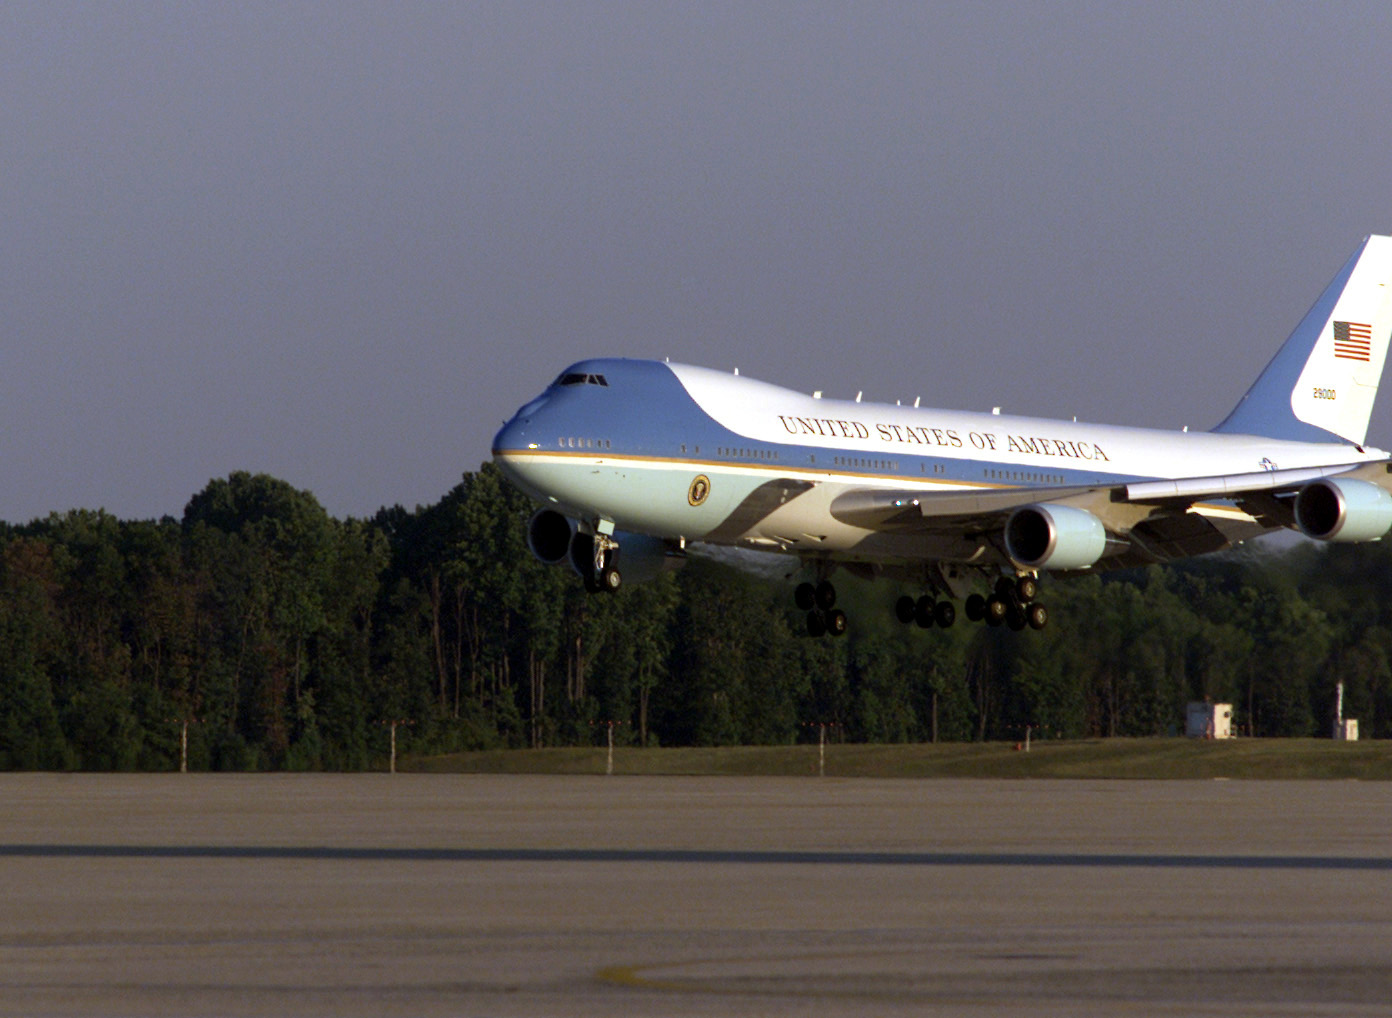 File:Air Force One comes in for a landing at Andrews AFB ... Andrews Afb